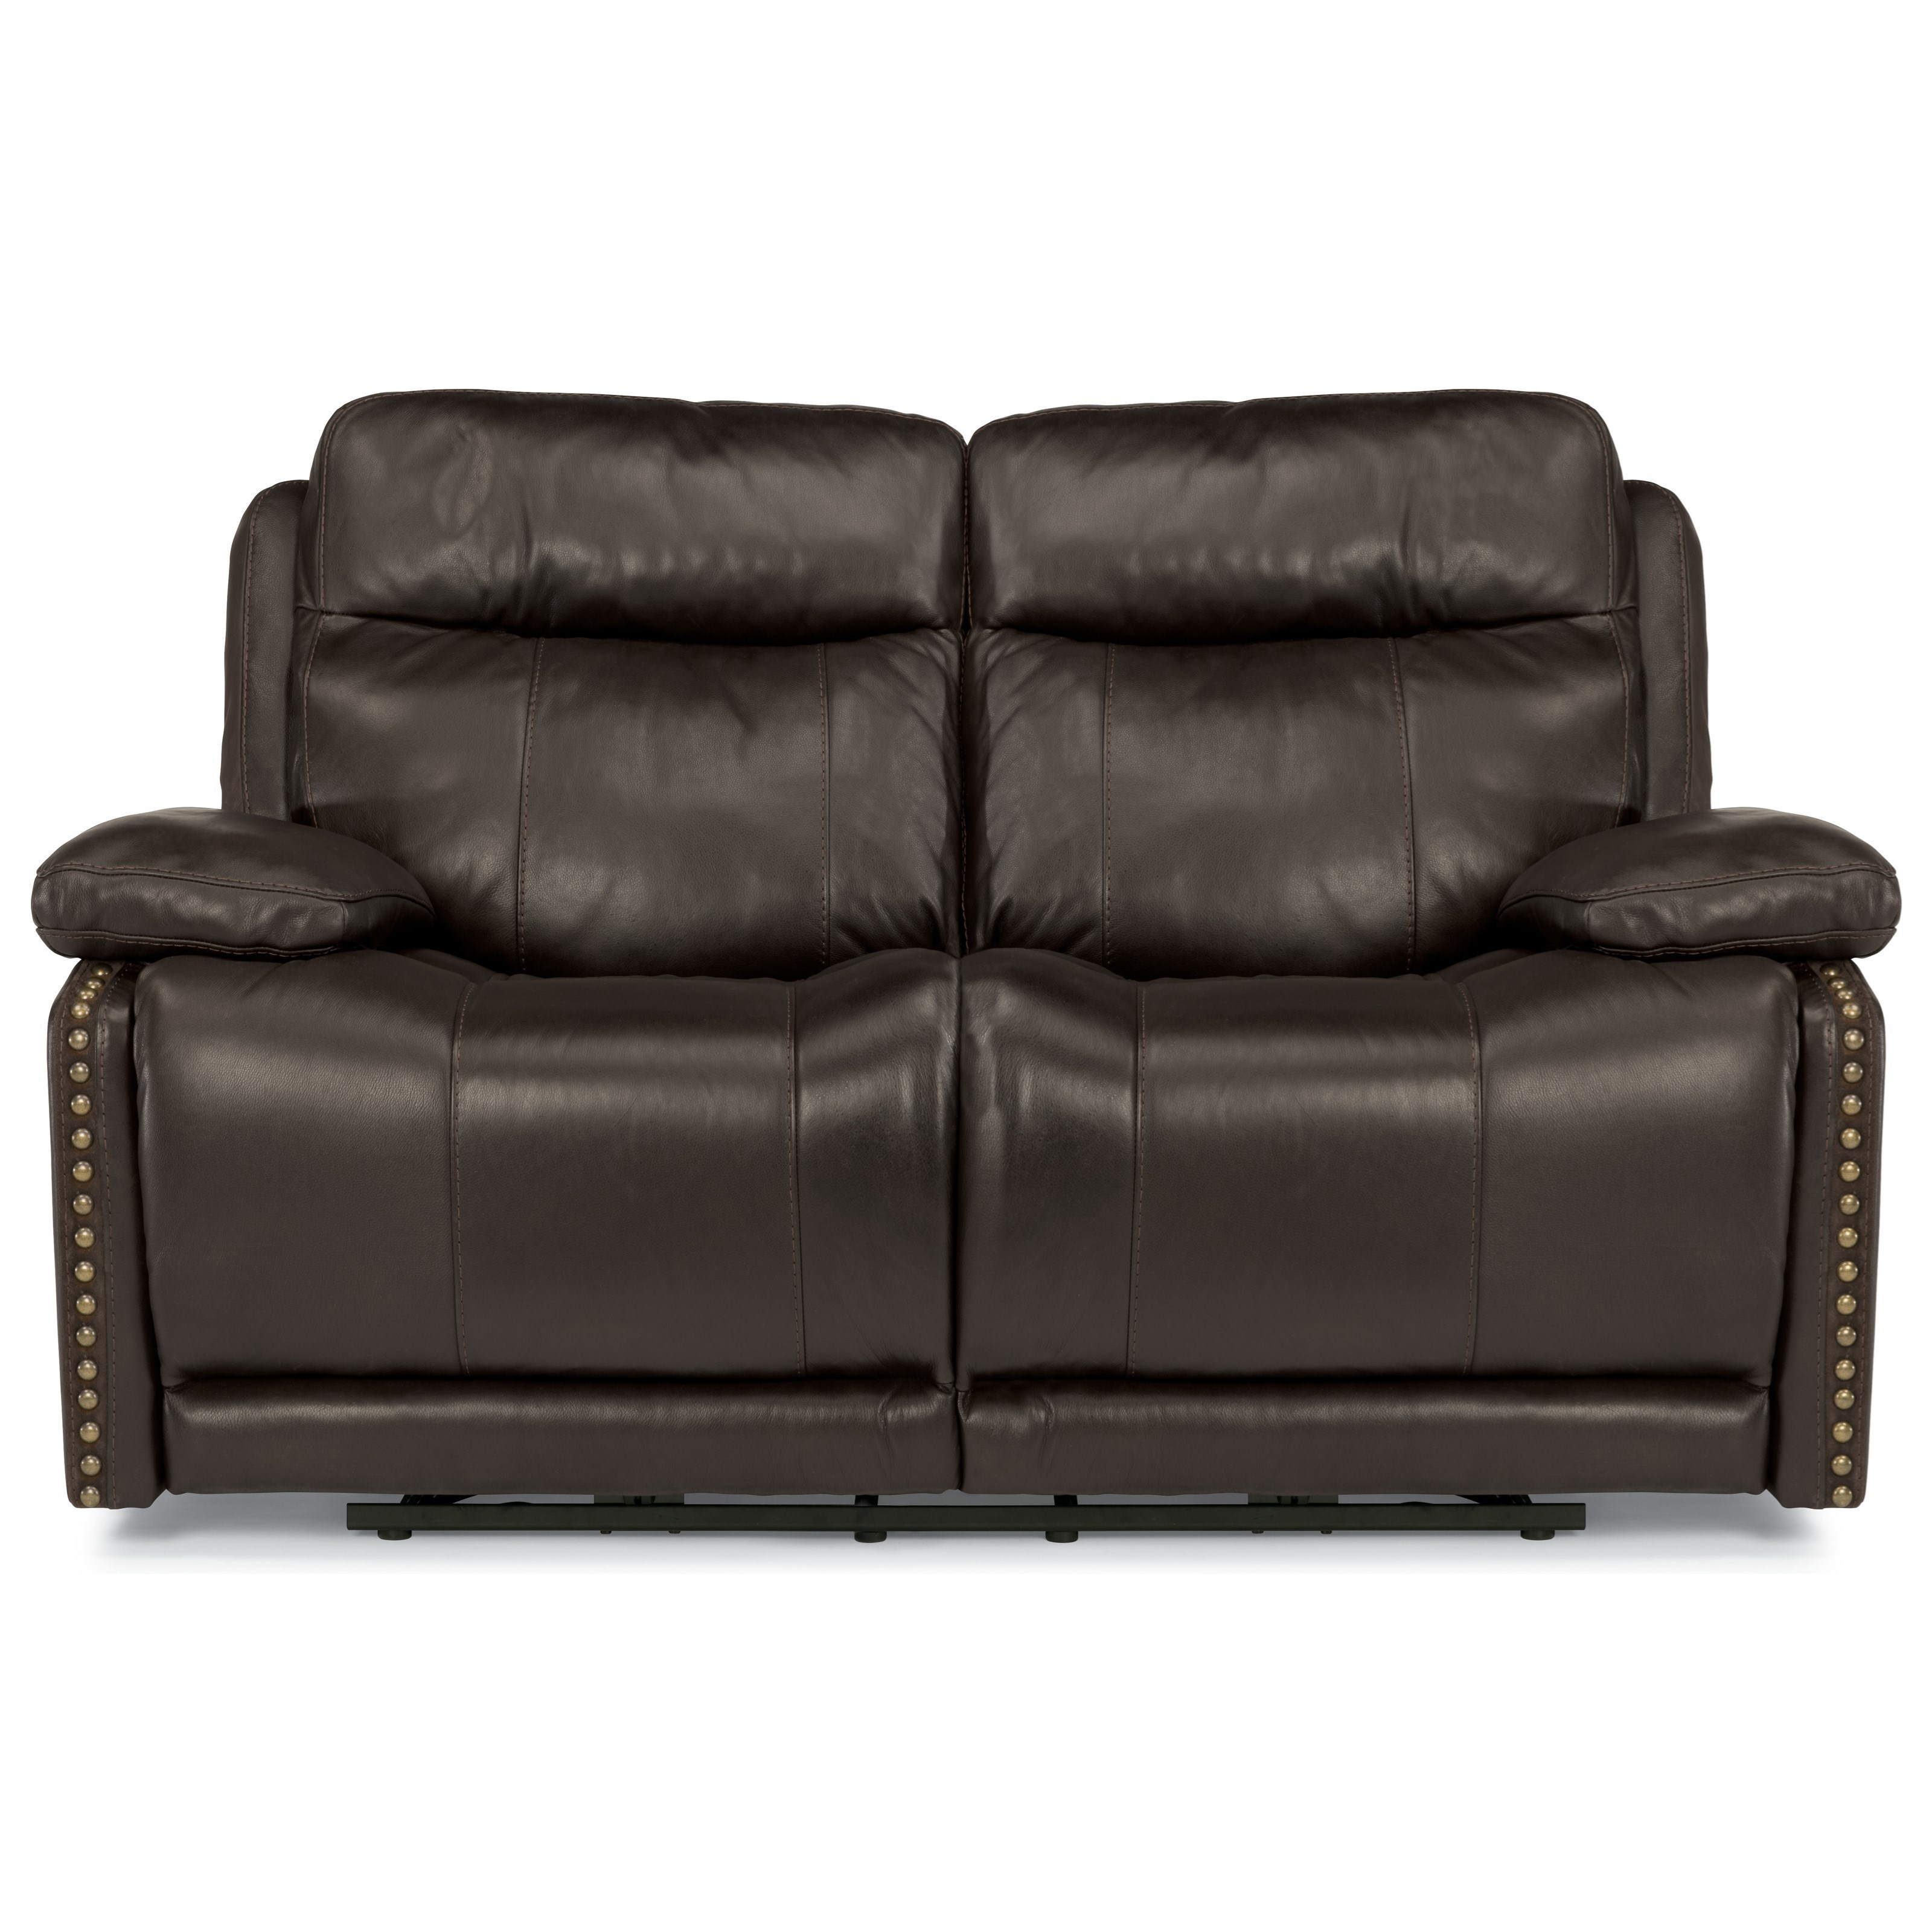 Flexsteel Latitudes-Russell Power Reclining Love Seat with Adjustable Headrests and USB Ports ...